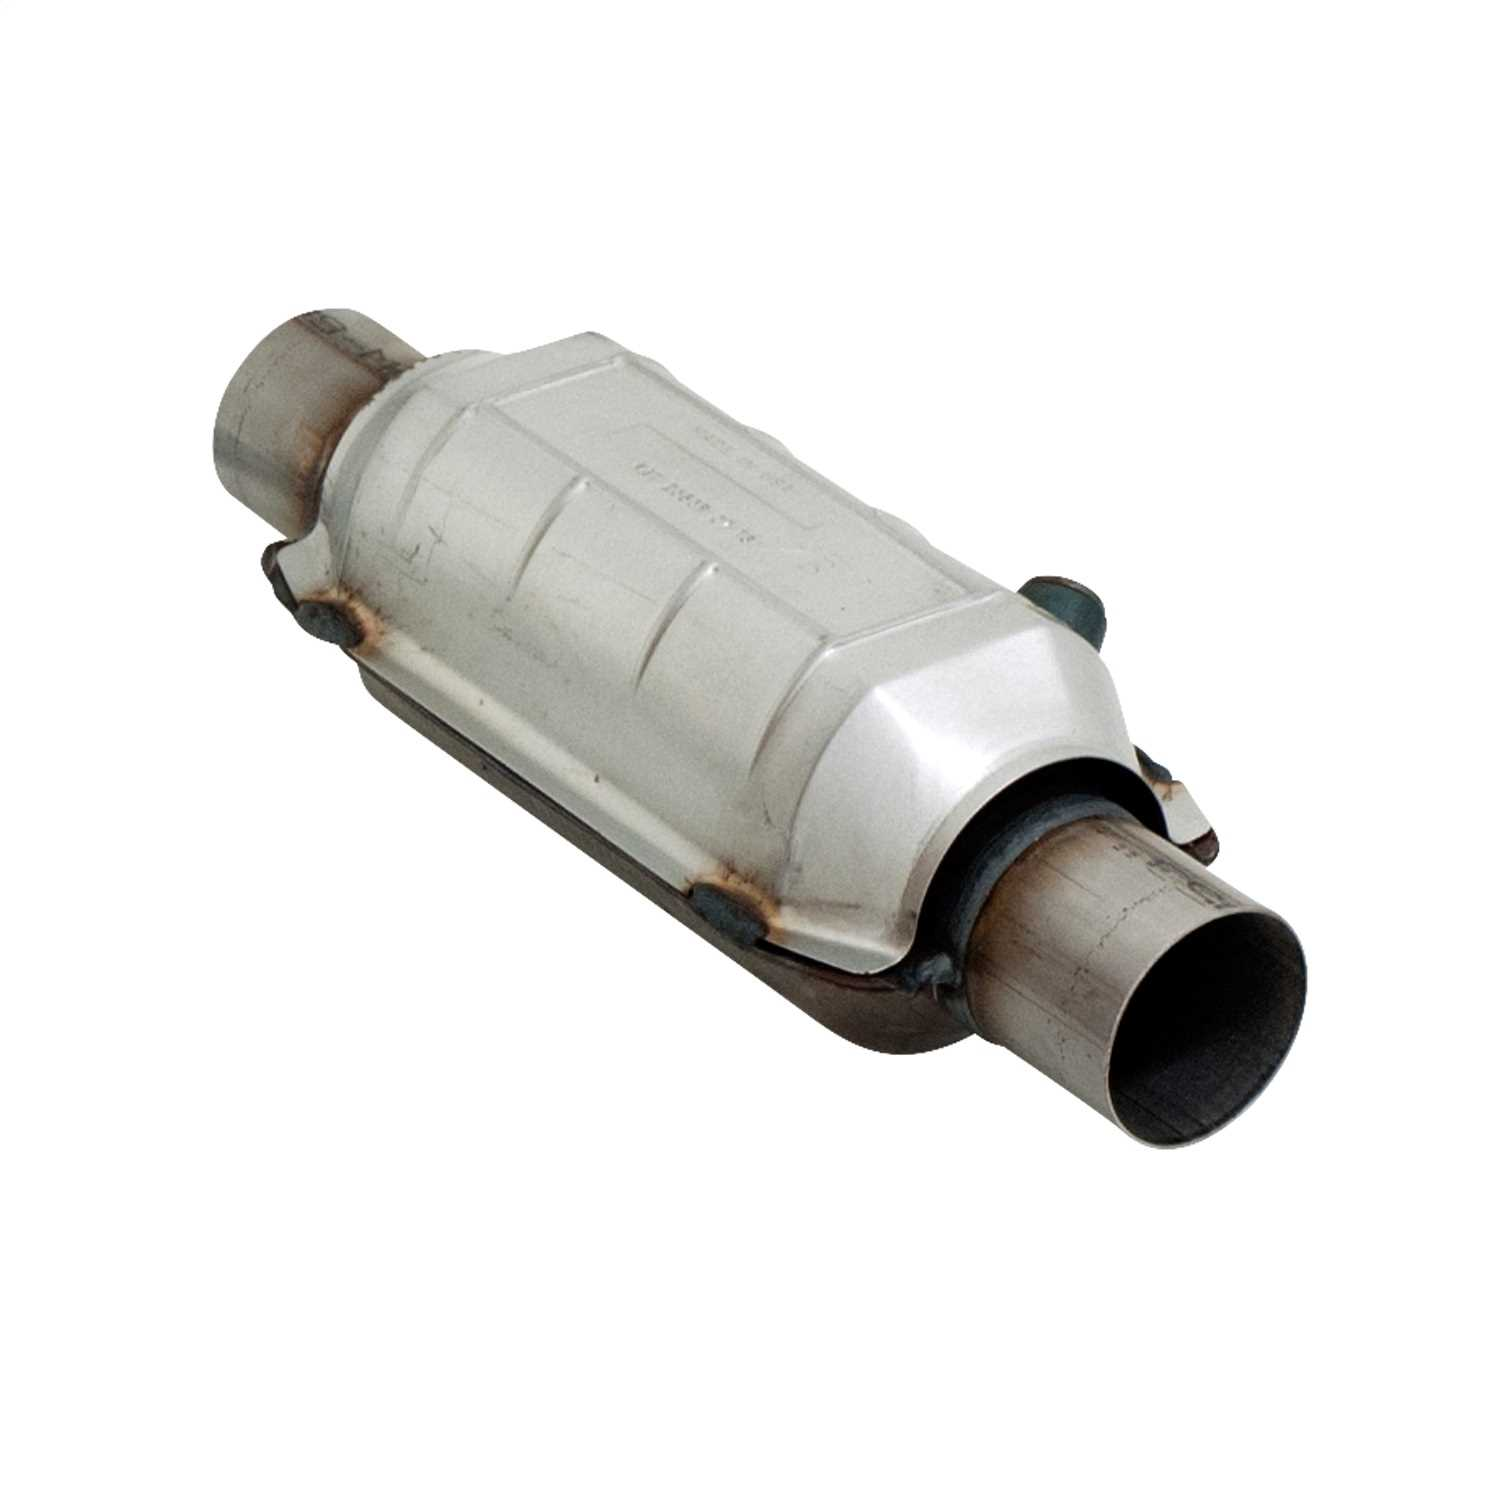 2821125 Flowmaster 49 State Catalytic Converters Universal Catalytic Converter